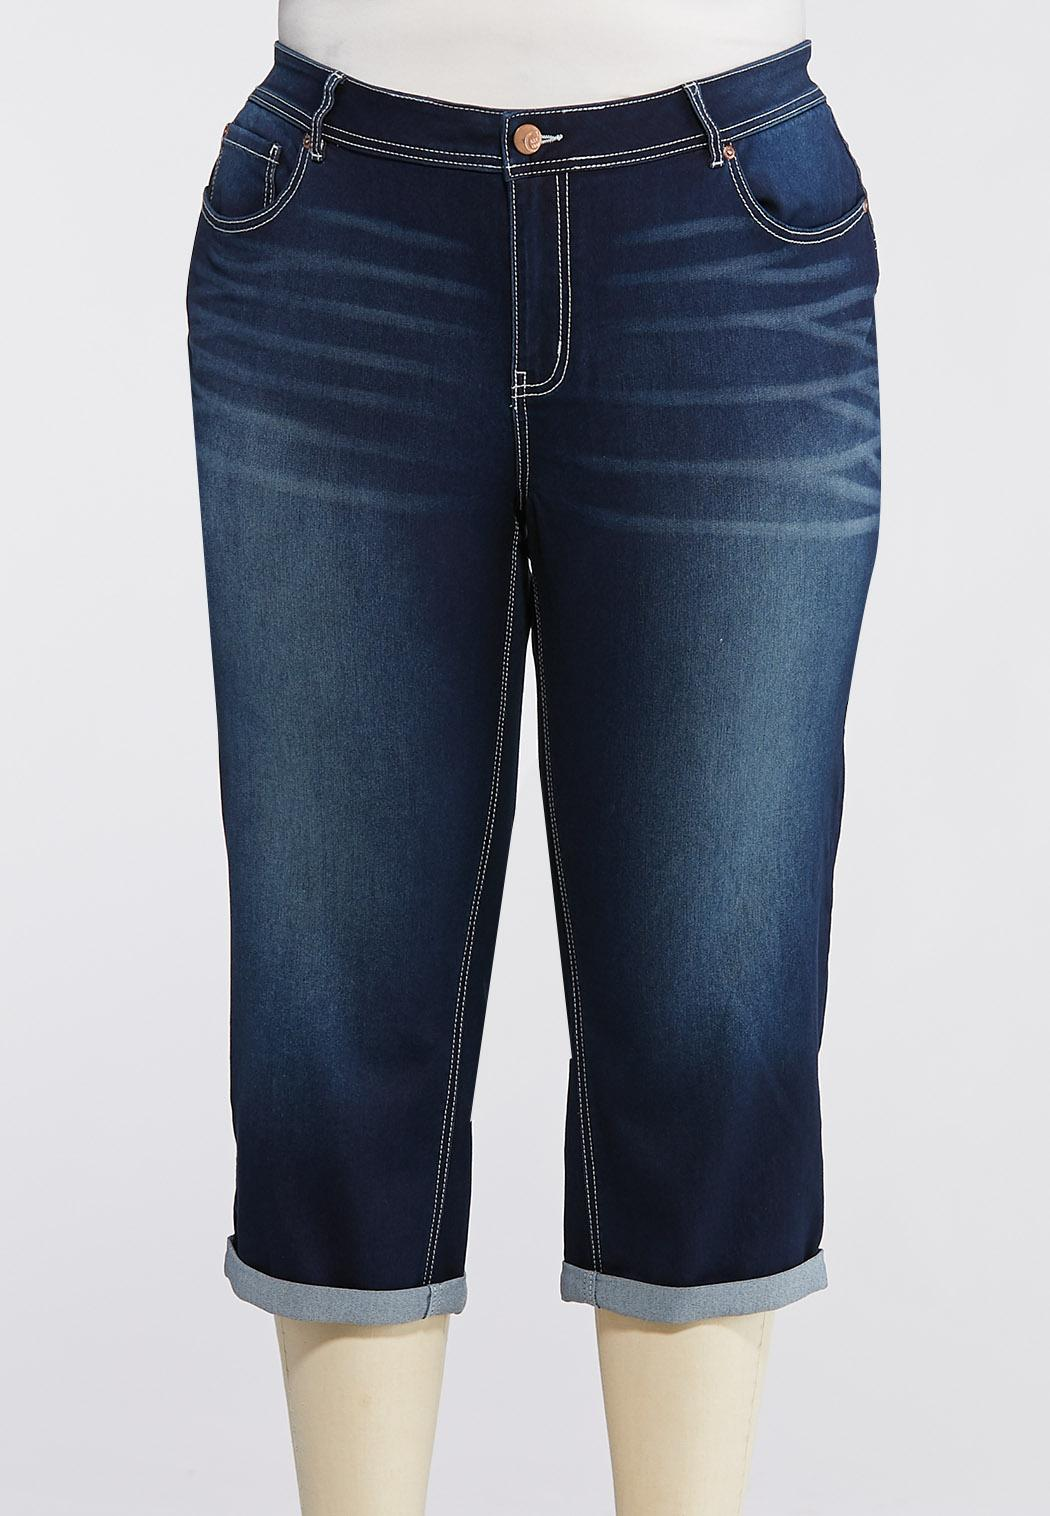 Plus Extended Curvy Uplifting Cropped Skinny Jeans